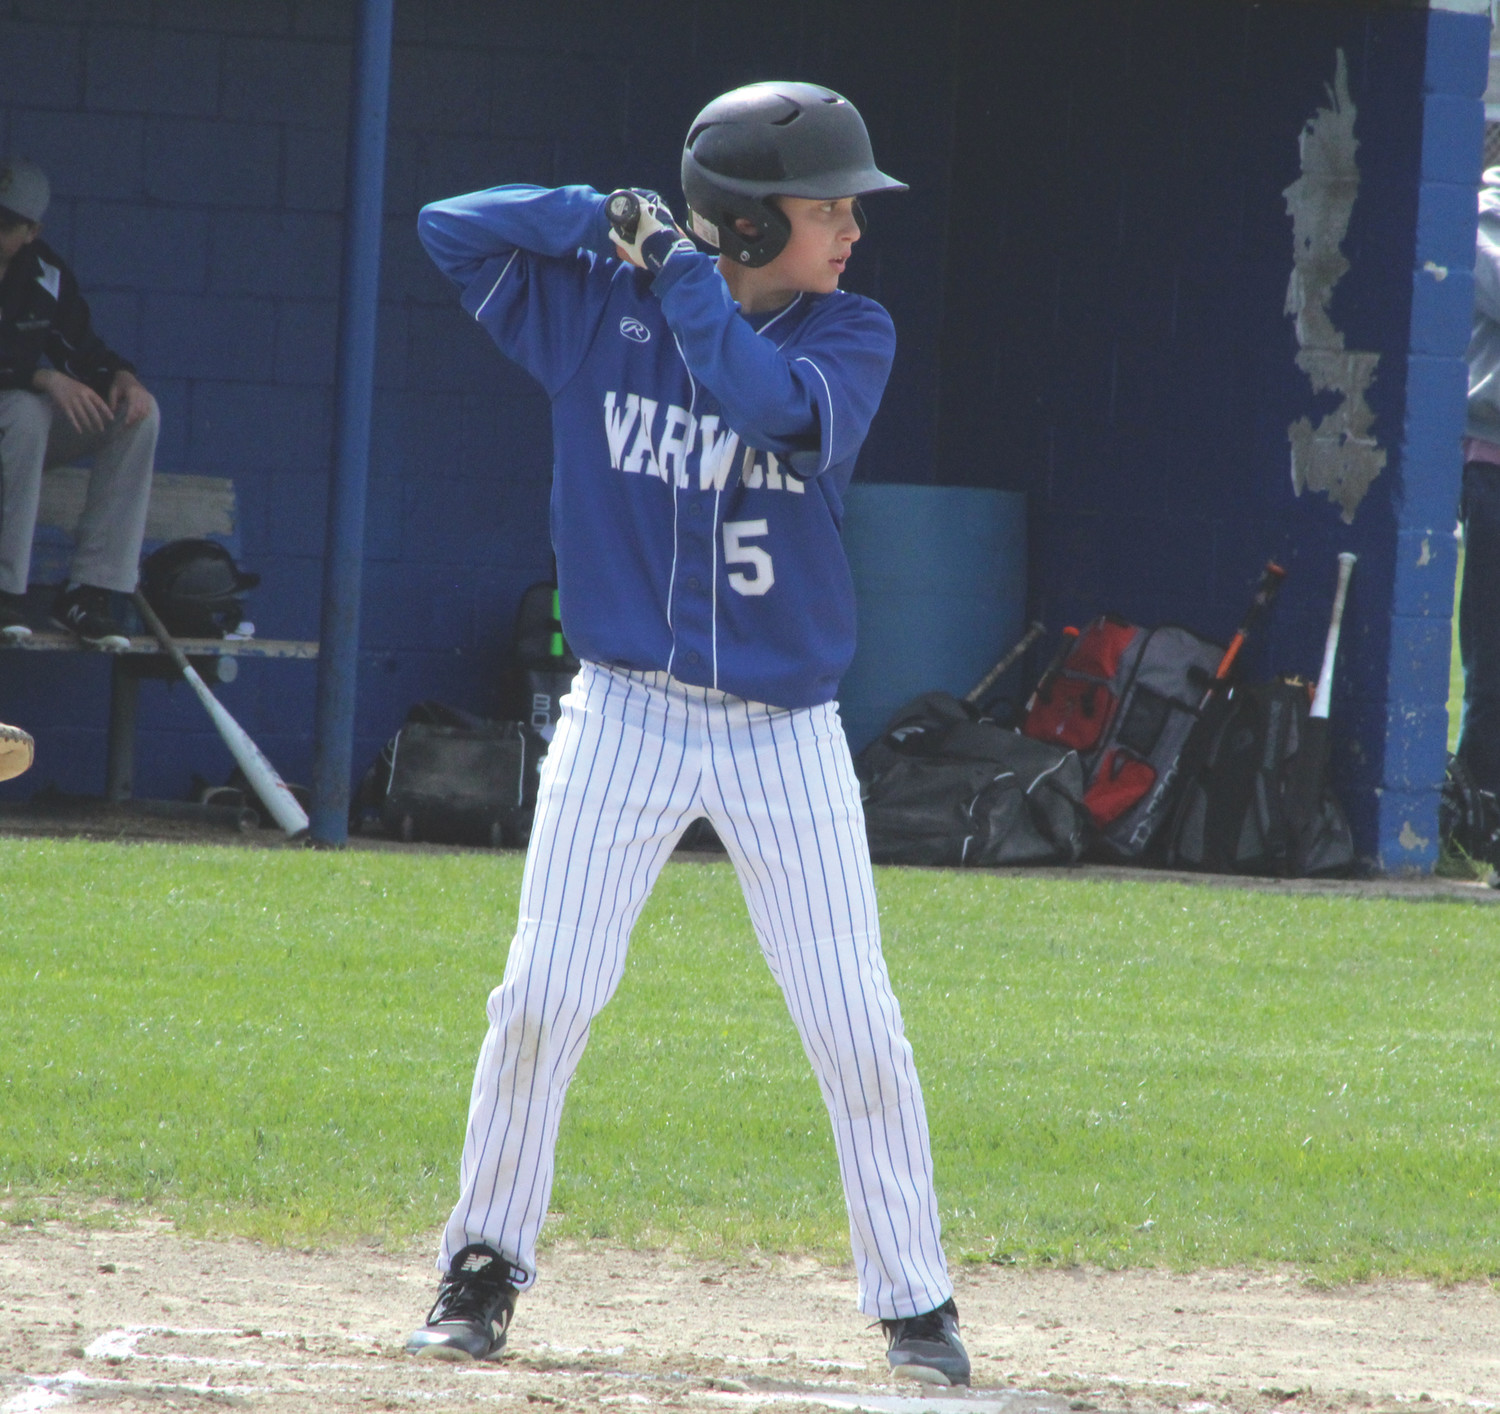 EYE ON THE BALL: Vets' Thomas D'Andrea steps up to the plate against Immaculate Conception.